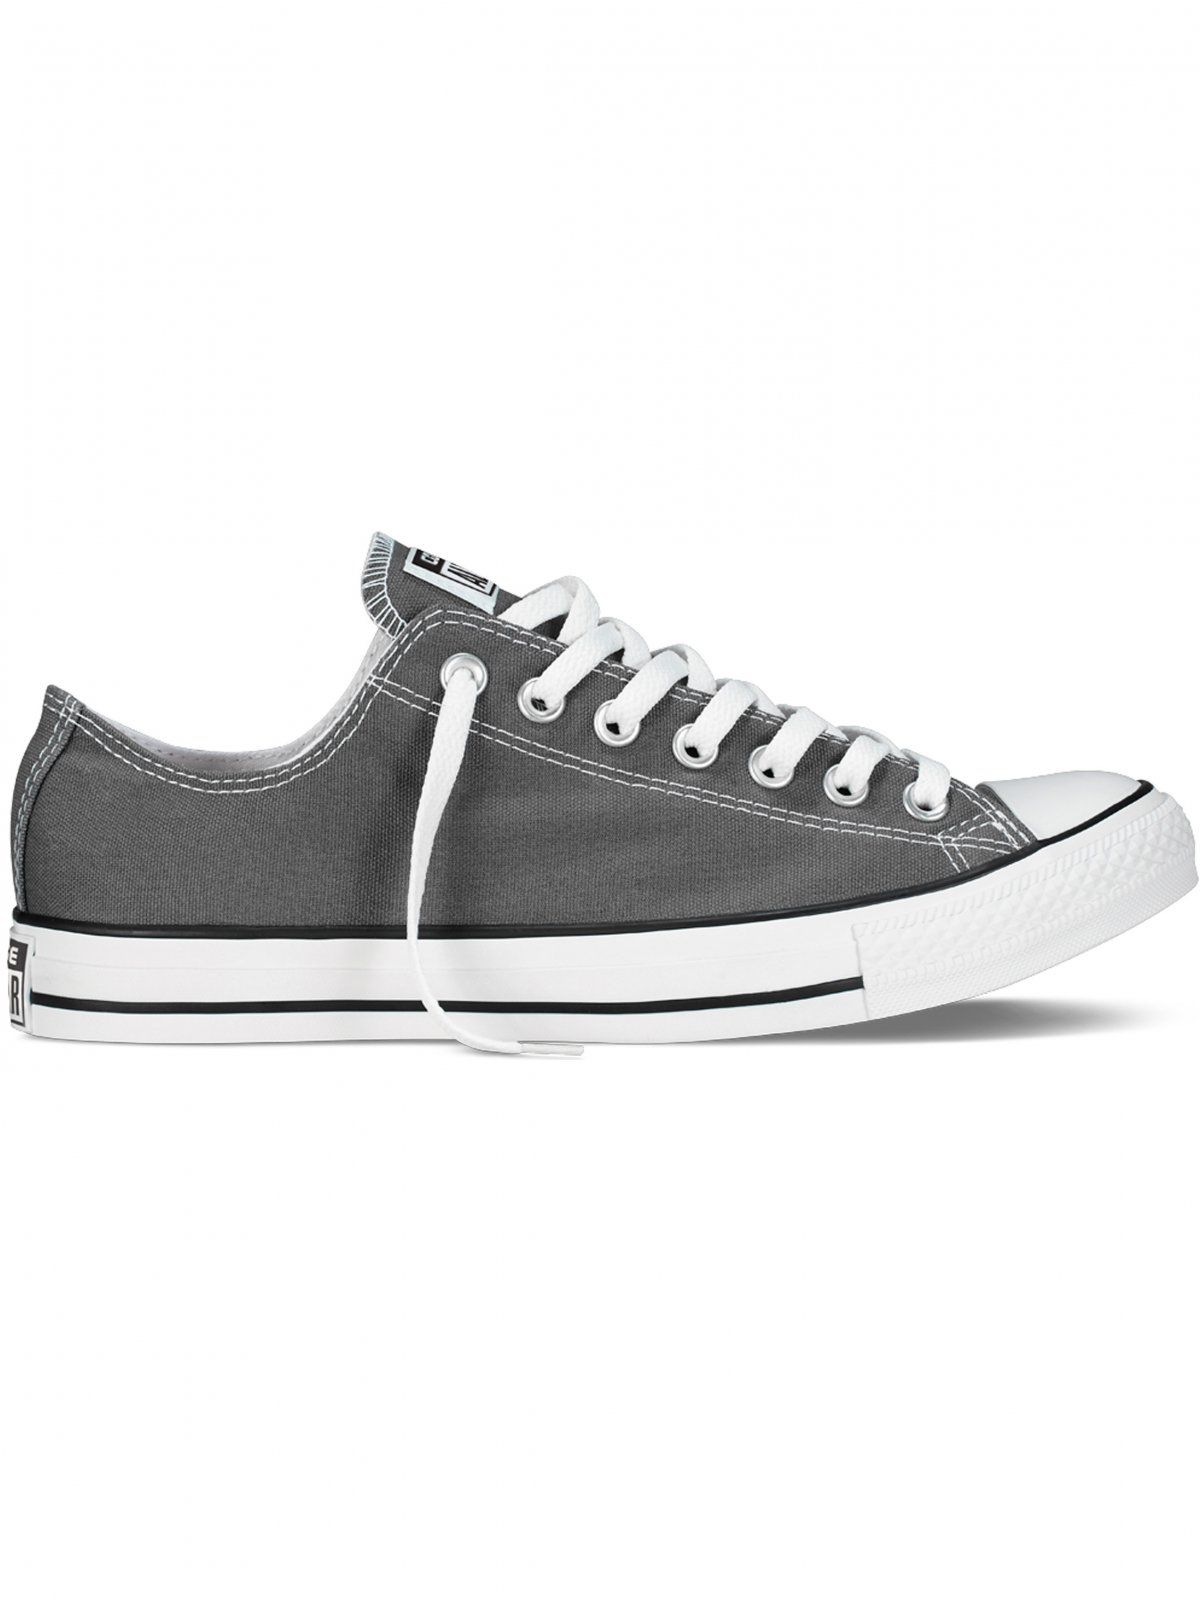 Converse All Star Unisex Chuck Taylor Low Top - Charcoal